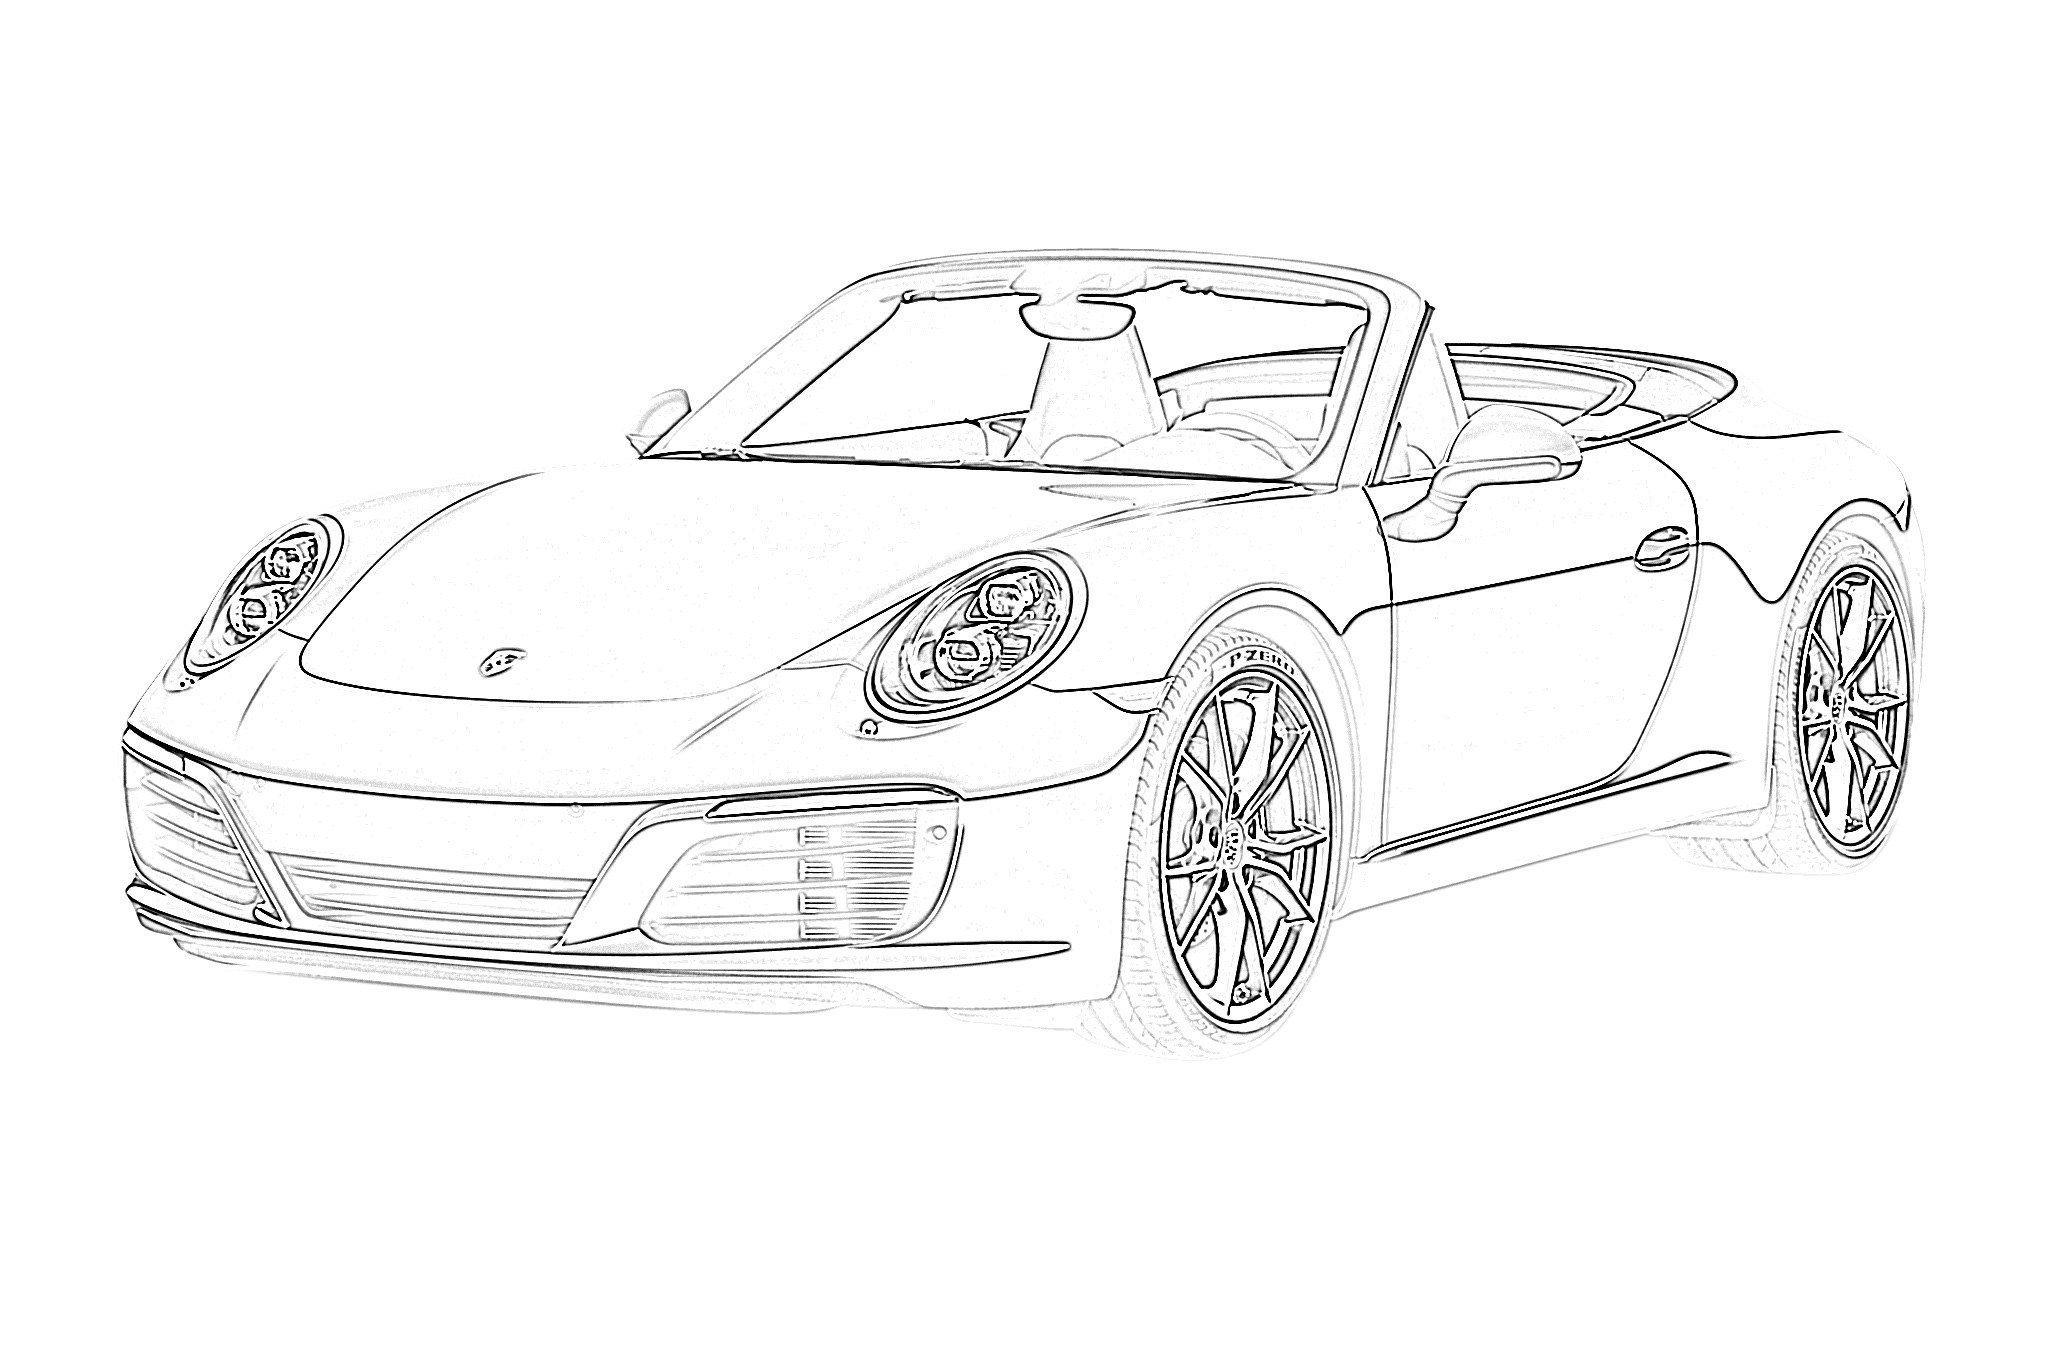 cars colouring 17 free sports car coloring pages for kids save print cars colouring